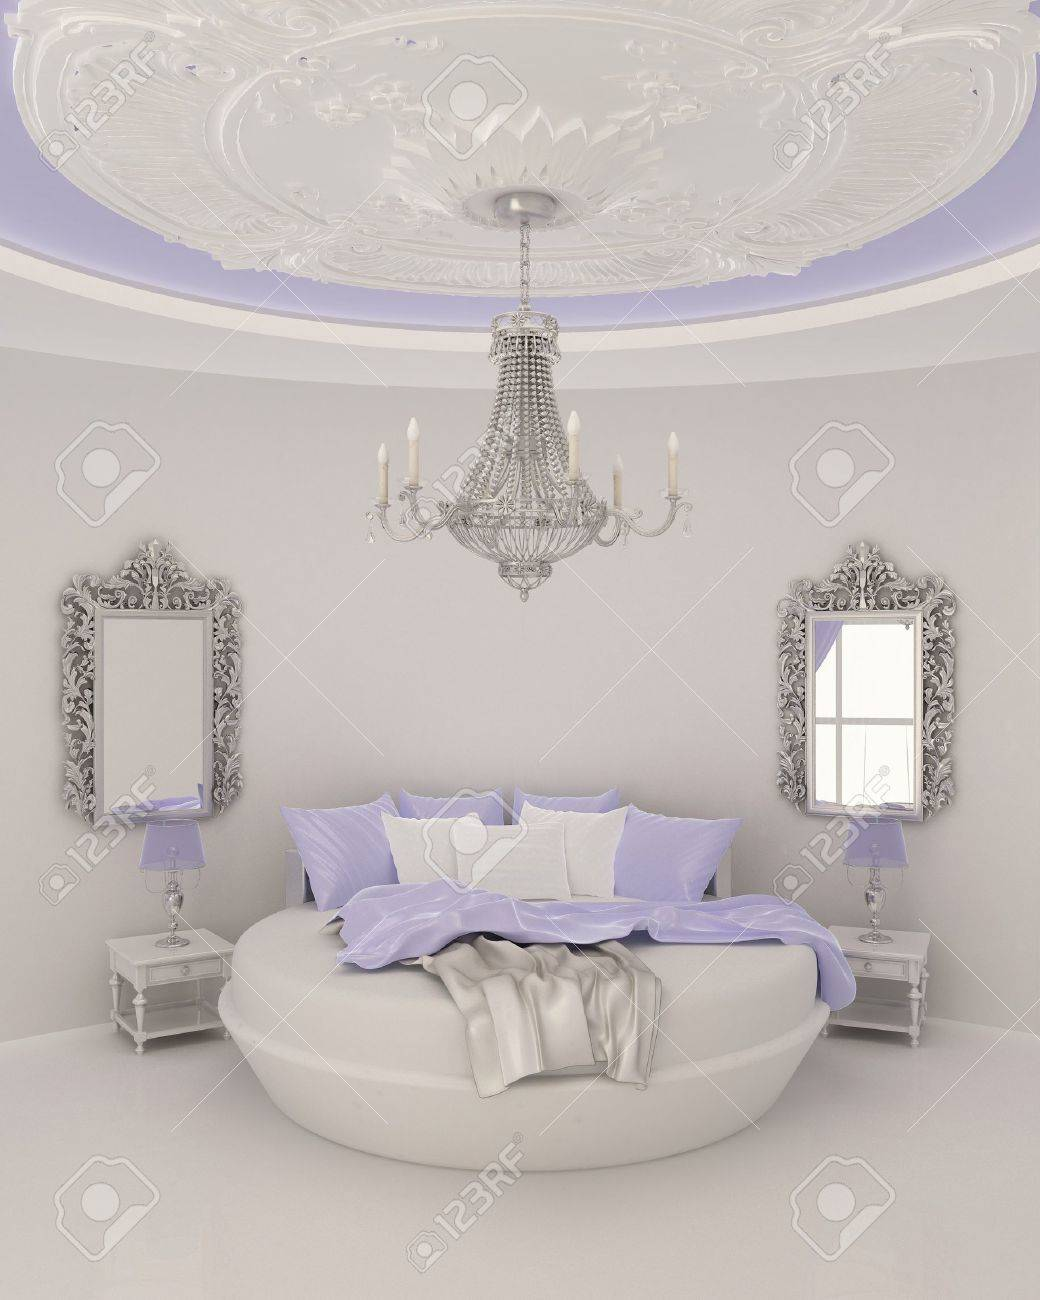 ceiling decor in modern bedroom Stock Photo - 10300765